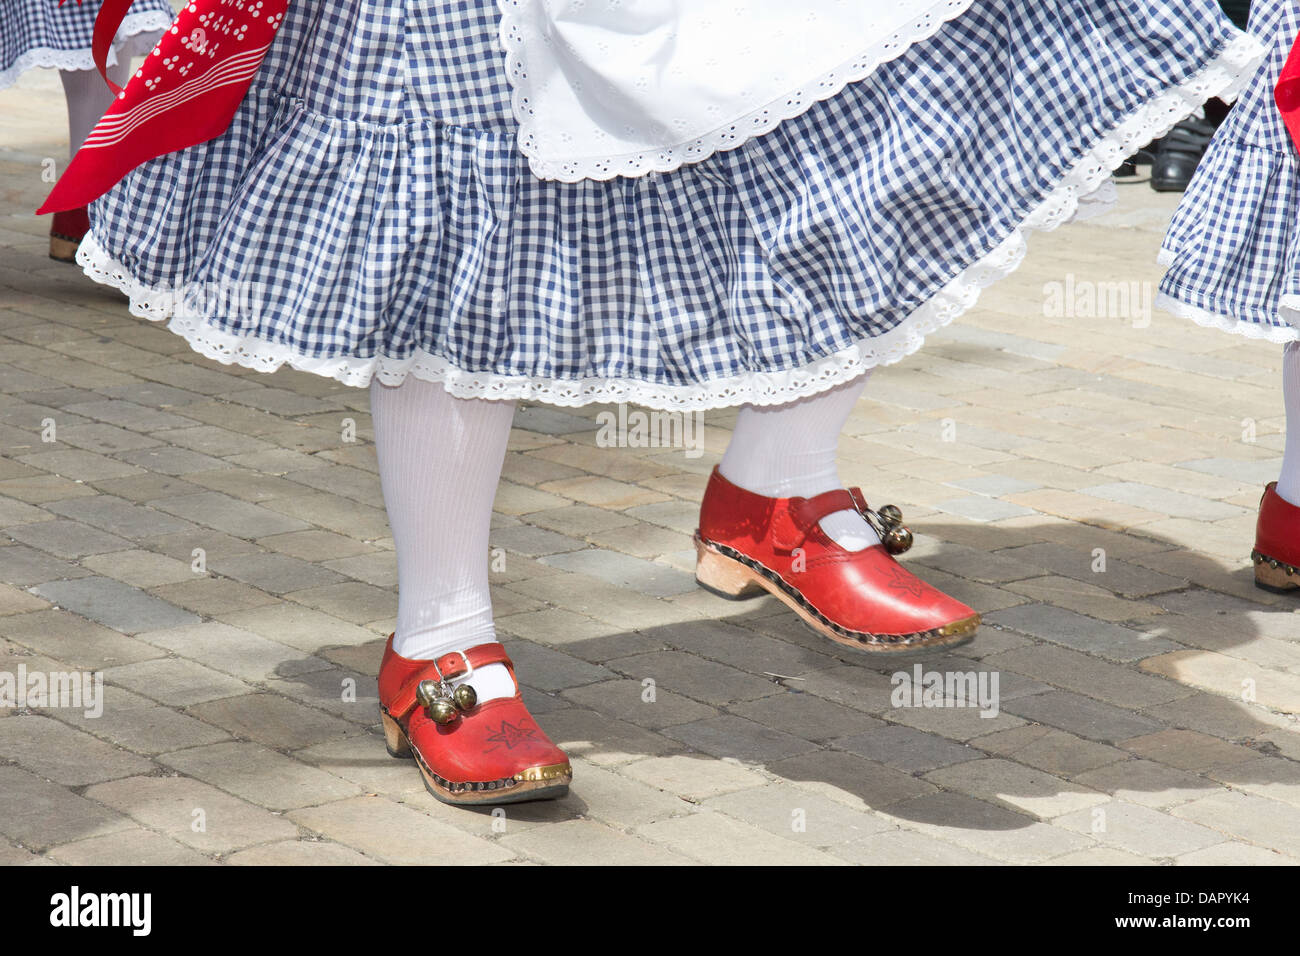 Portrait of a traditional folk dancer at the Bakewell Day of Dance 2013. Red shoes and bells - Stock Image